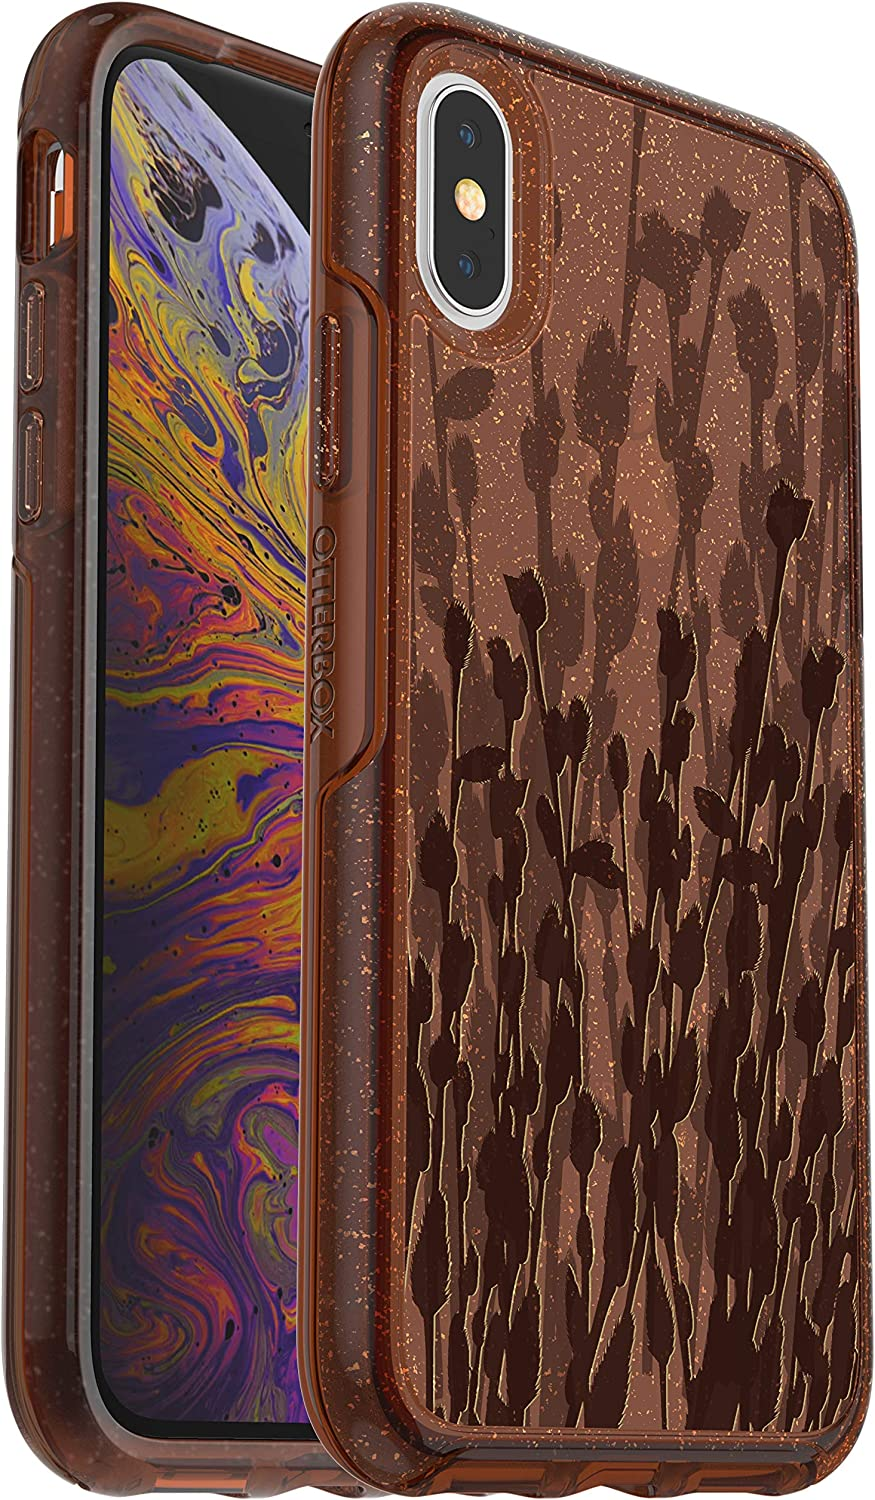 OtterBox Symmetry Series Case for iPhone Xs & iPhone X - Retail Packaging - That Willow Do